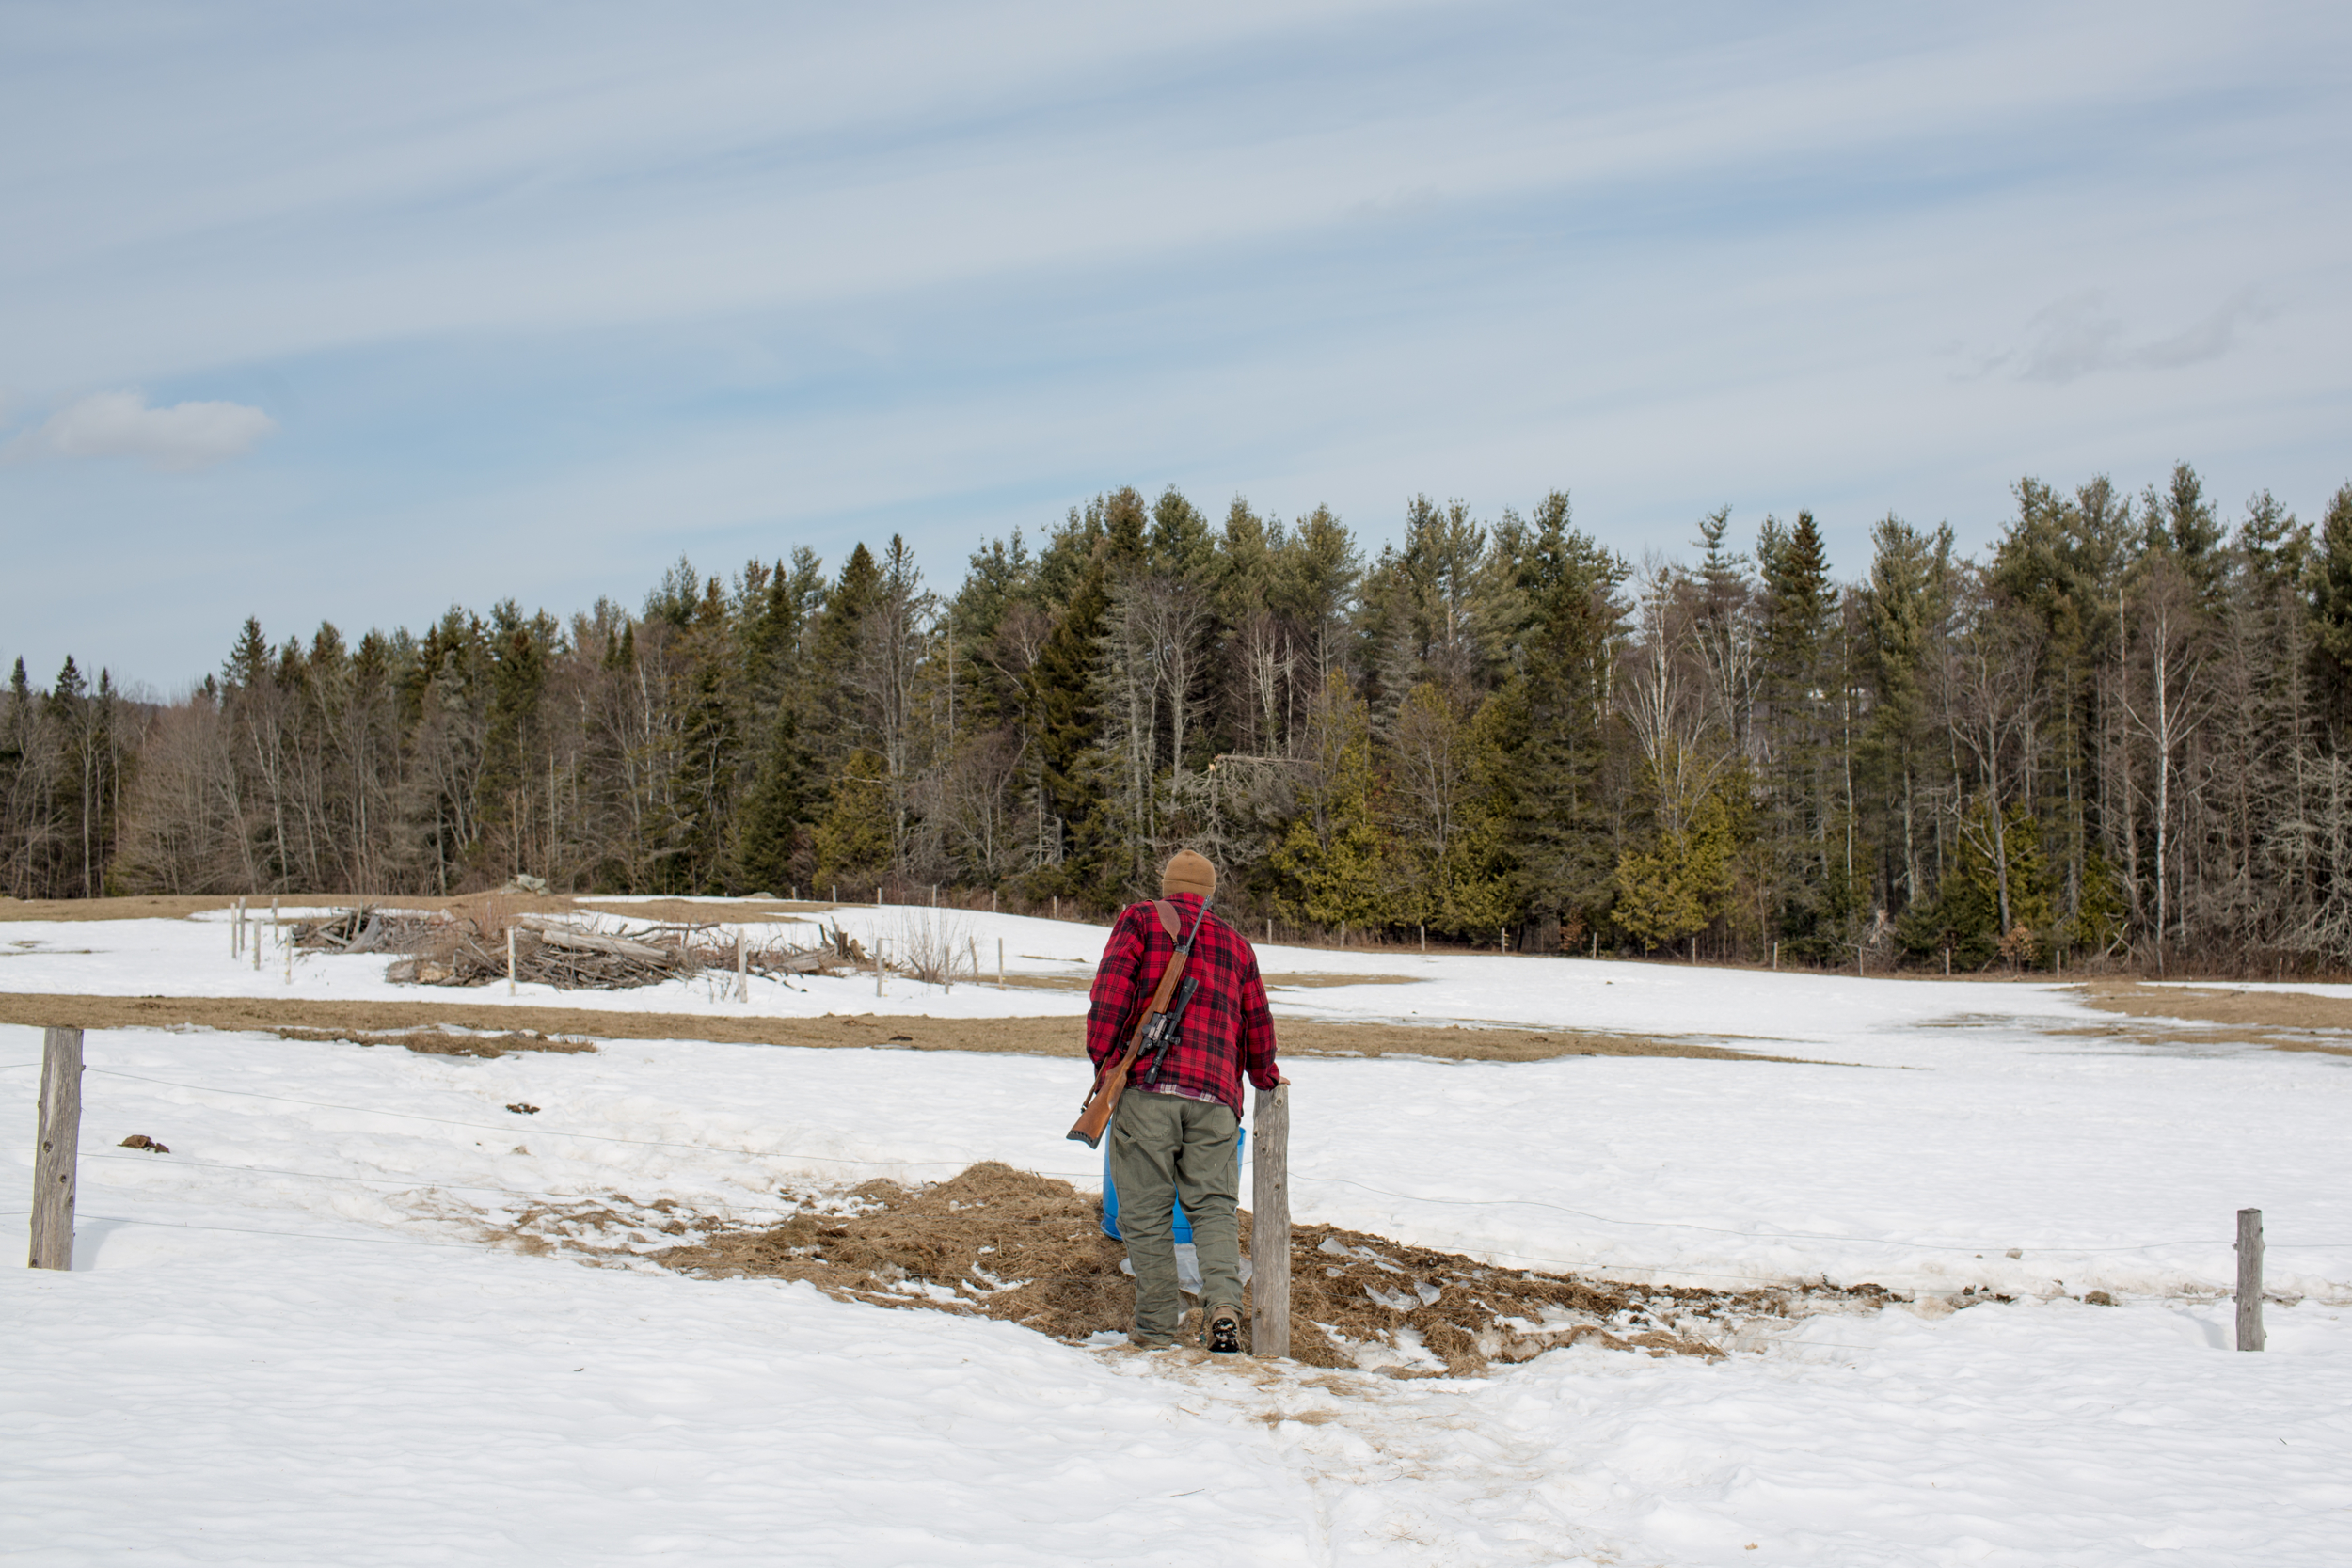 "Tom Galinat, 35, walks the farm's fence line checking for signs of damage and coyotes on Friday, April 7, 2018 after a heavy wind storm in Peacham, V.T. Galinat moved to the town in 2013 to farm with his family on their land. A father of two as well as the town's clerk, Galinat says he is a gun owner who is in favor of what he calls common sense gun control. ""We need gun safety measures passed because we're abusing that,"" he said. ""It's not the gun, it's the features of the gun. Like higher capacity magazines."" For Galinat and his family, their livelihood relies on owning a firearm, hunting for food as well as its use on their farm in rural Vermont. He explained a gun is no different of a tool to him than a hammer or saw and he grew up with his grandfather using a gun to hunt. Galinat inherited his grandfather's Savage Fox Model D side-by-side two-trigger shotgun which was once used for bird hunting and is now brought out each year for opening day of turkey hunting. There is a sentimental attachment, he said, describing a worn out area on the stock where his grandfather's hand would grip. ""I don't want to give up my guns,"" he said, following chores at his farm on Friday, April 7, 2018. ""I relate to both sides so well.""